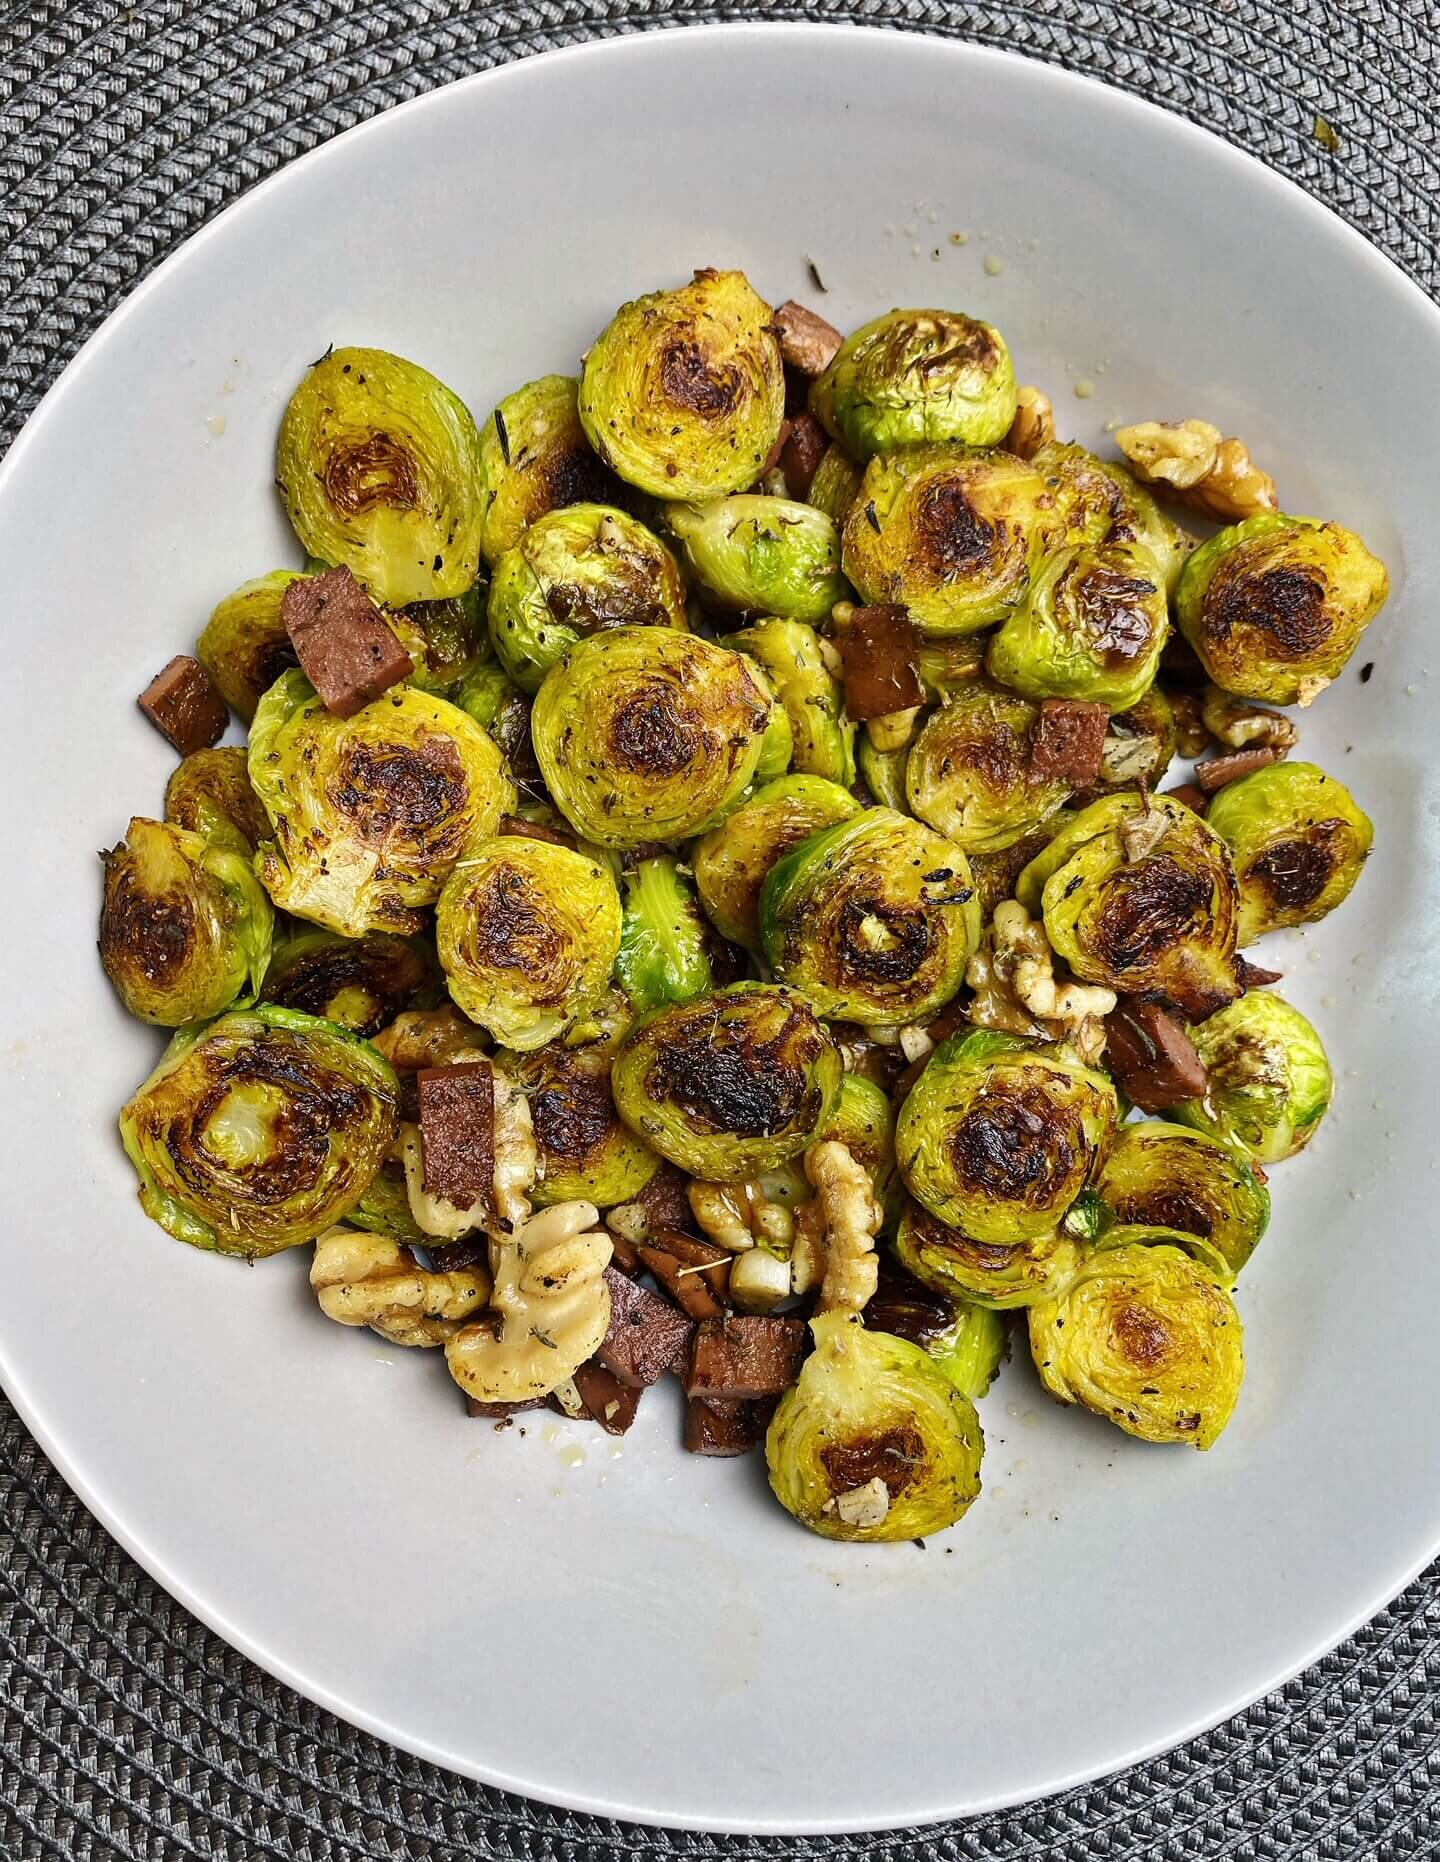 cook brussel sprouts